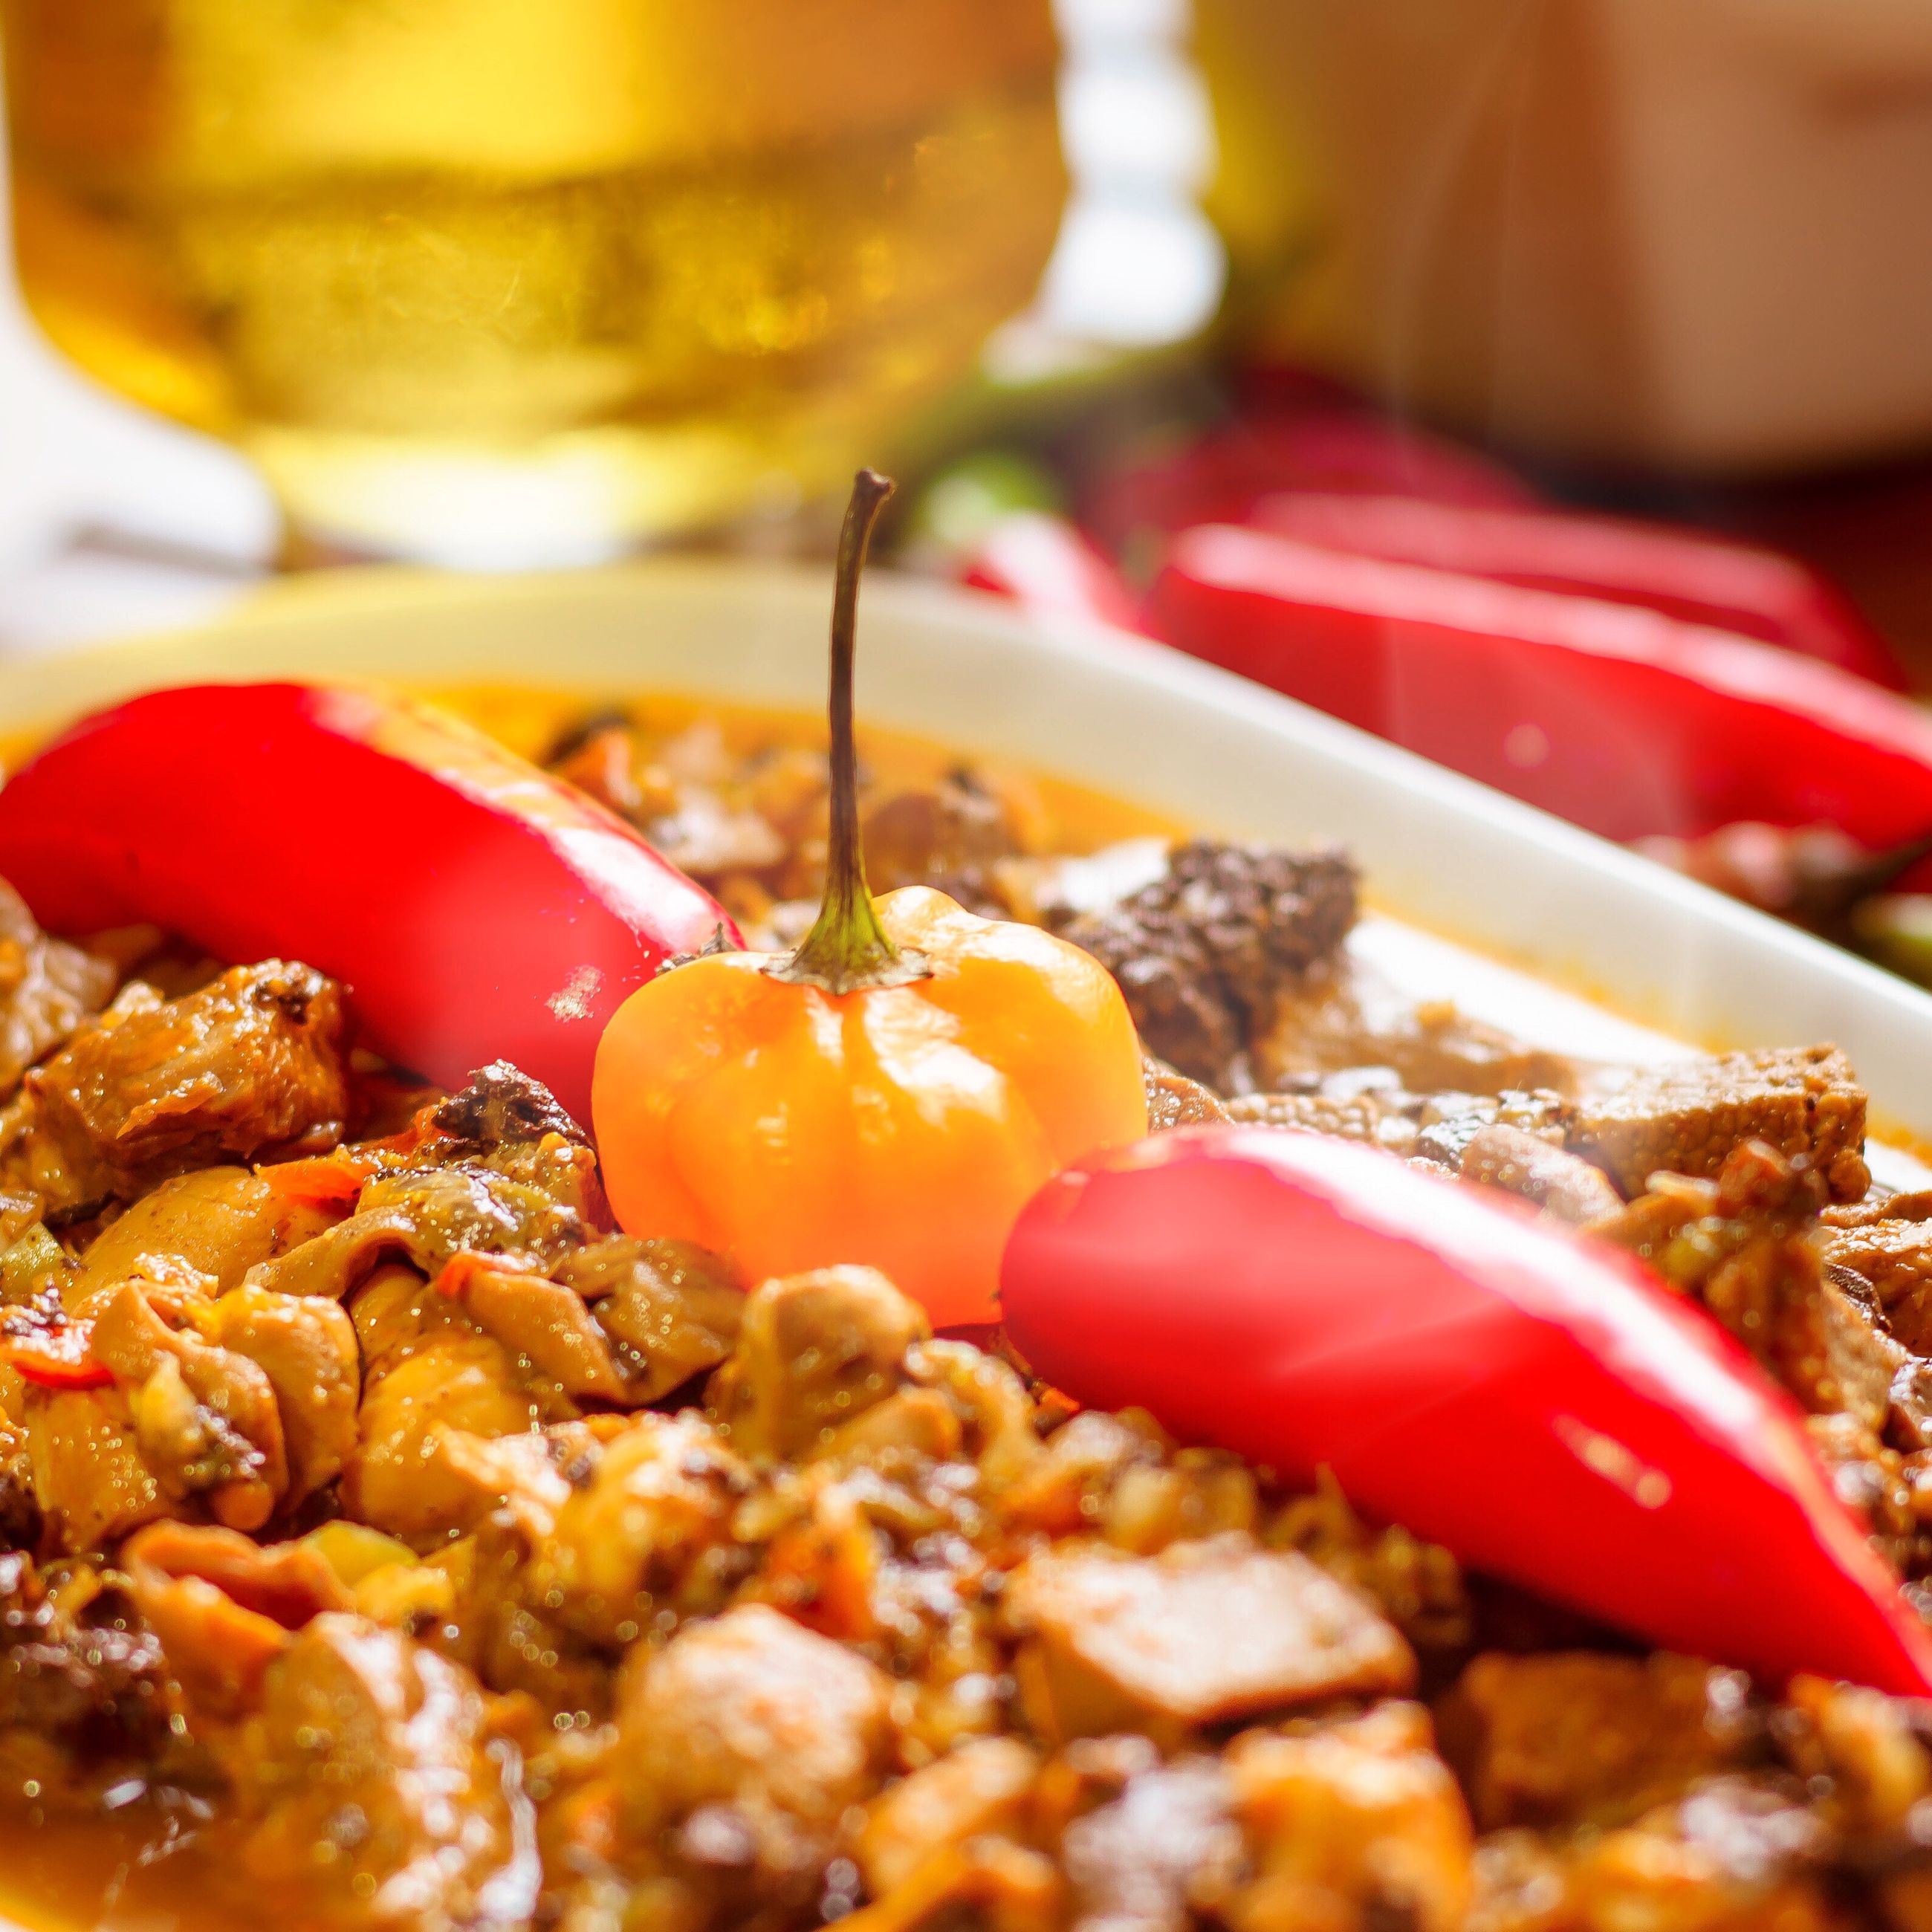 food and drink, food, indoors, no people, ready-to-eat, freshness, serving size, close-up, plate, red, healthy eating, mexican food, day